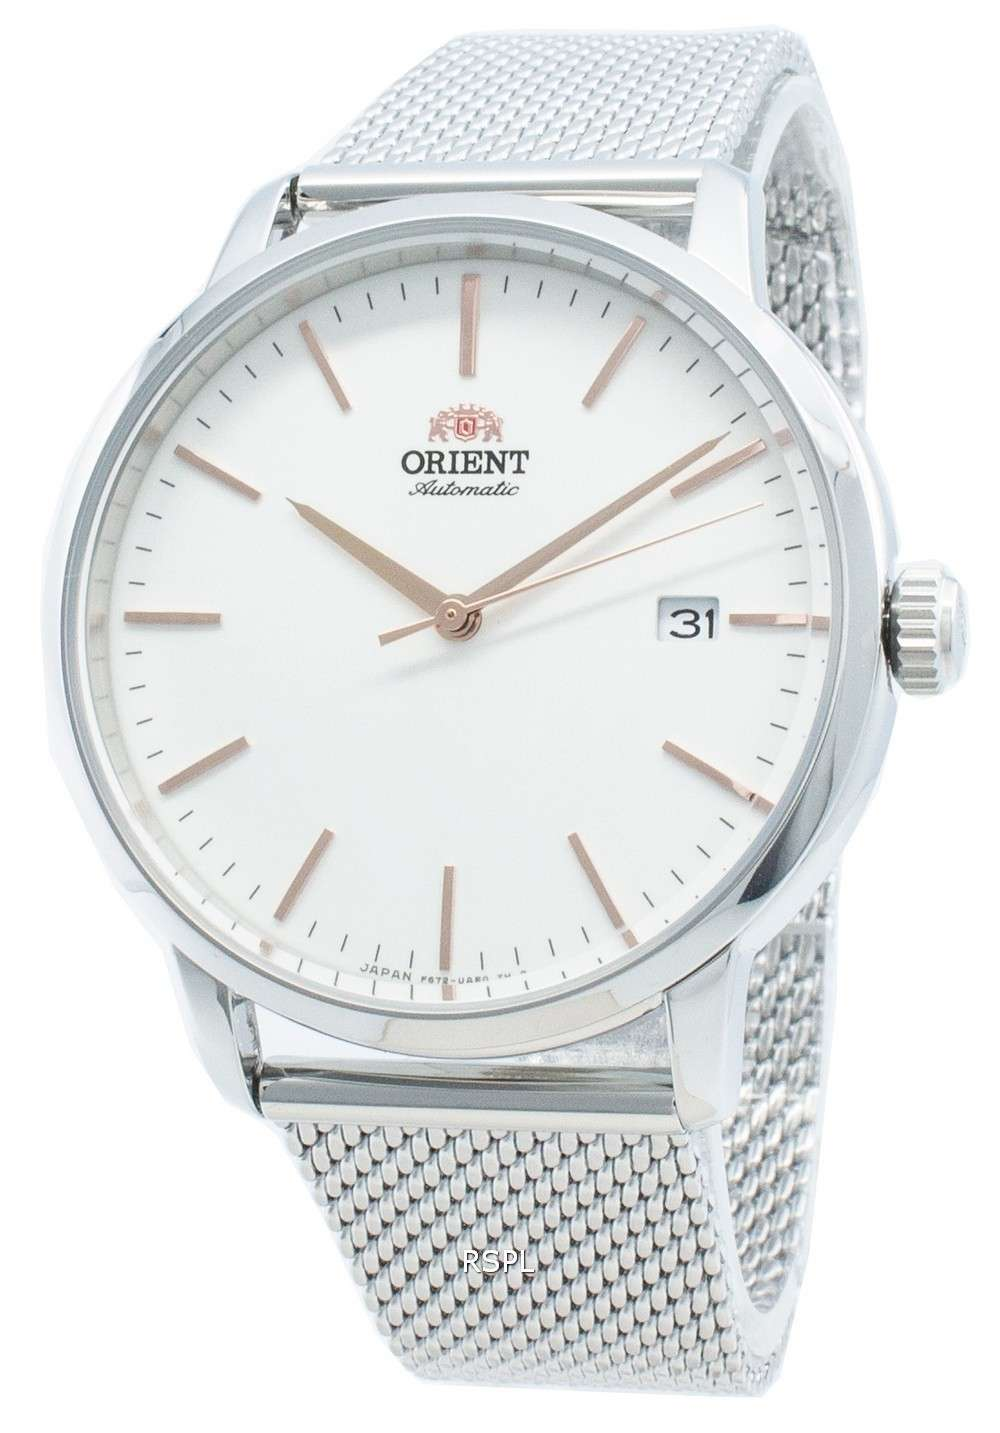 Orient Automatic RA-AC0E07S00C Men's Watch